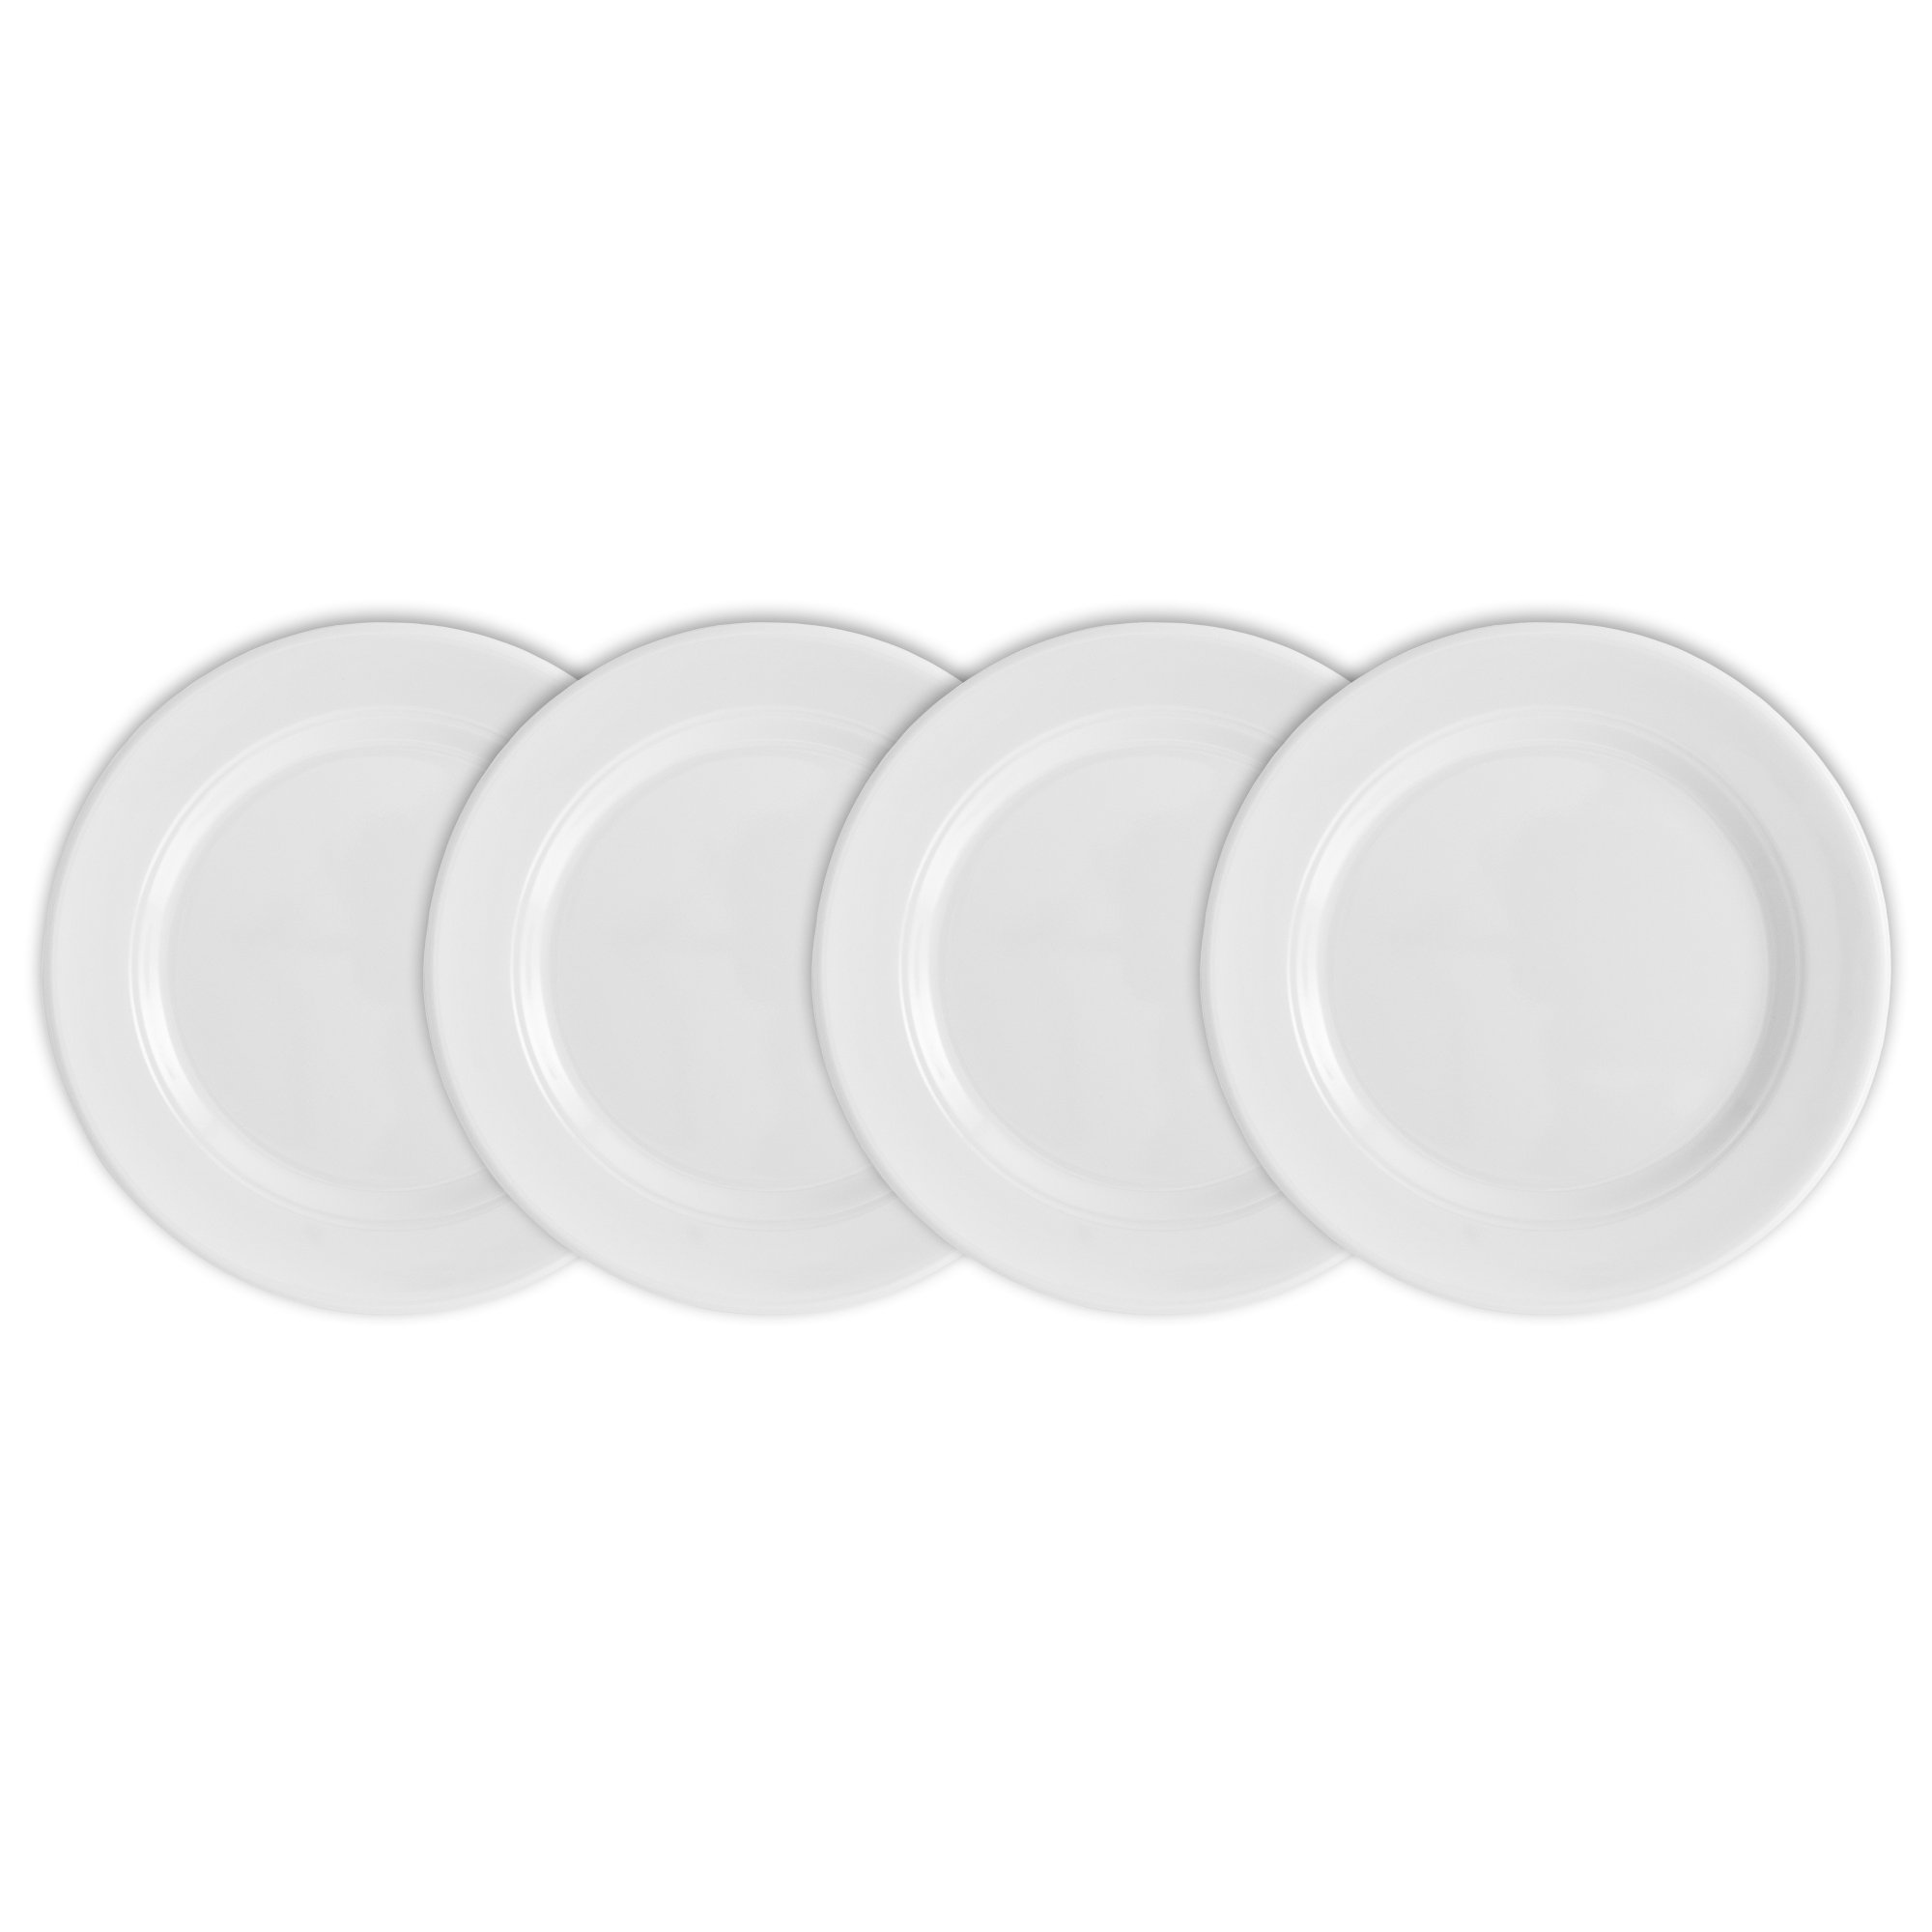 Q Squared Diamond Round Bread & Butter Plate, 5-1/2-inches, Set of 4, White by Q Squared (Image #1)